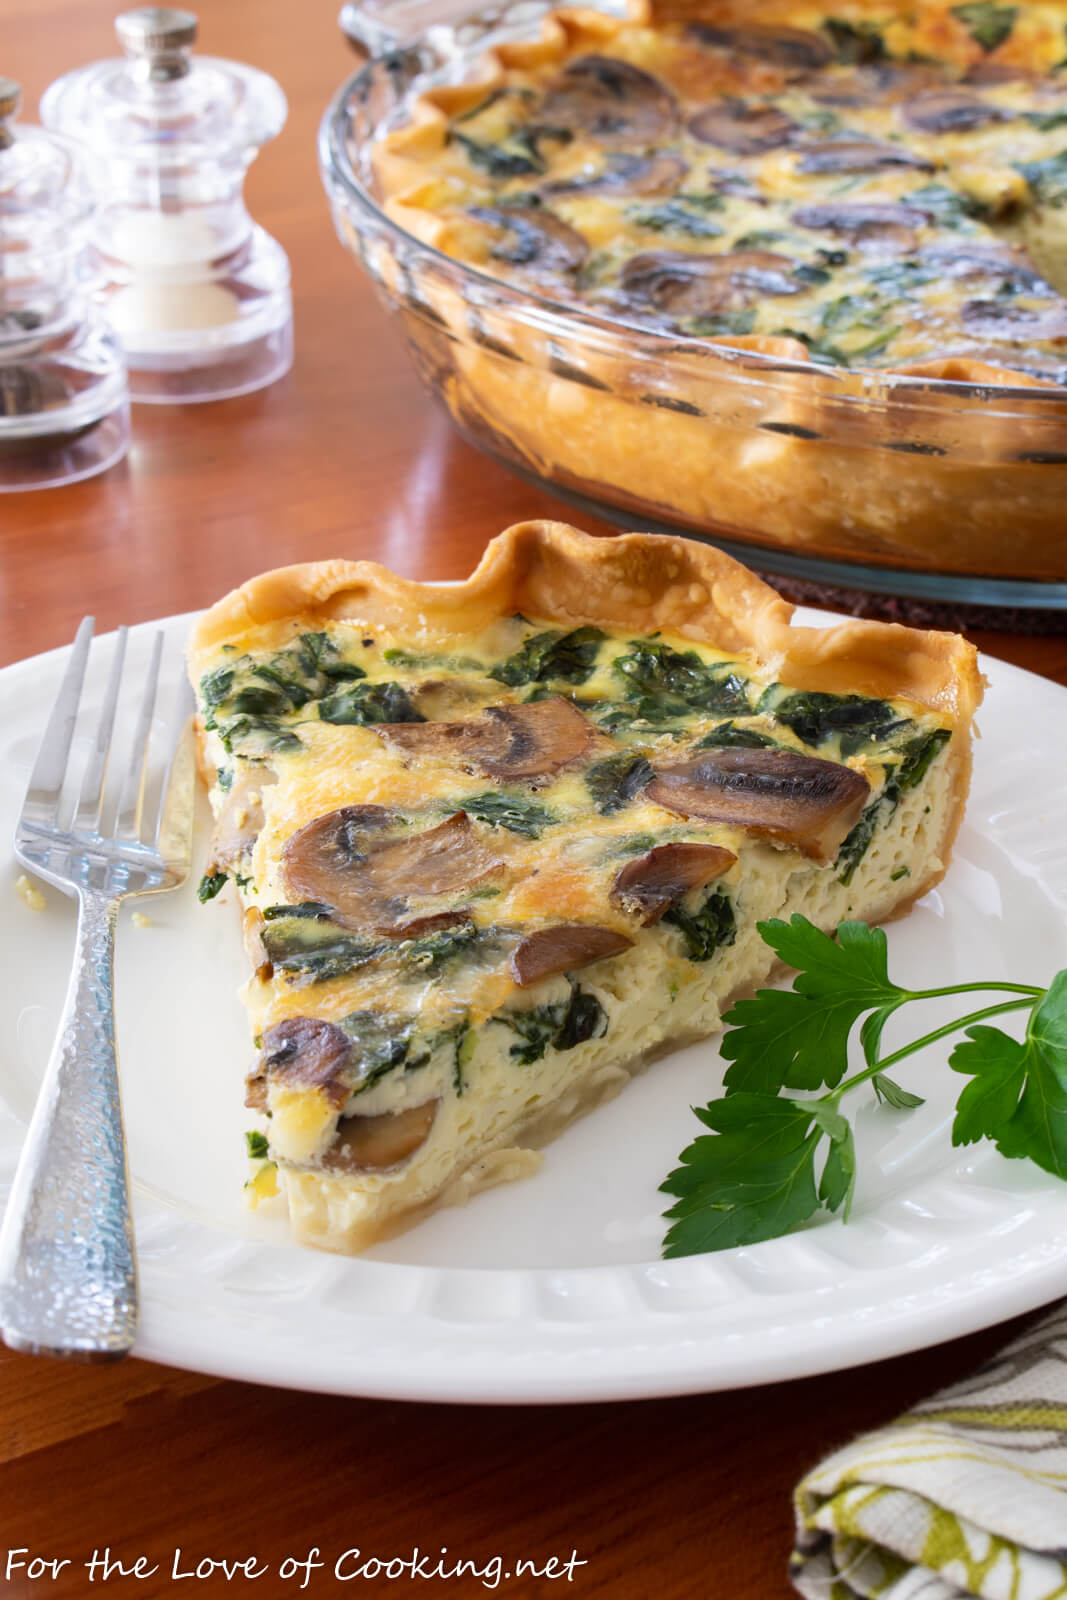 Mushroom and Spinach Quiche with Fontina